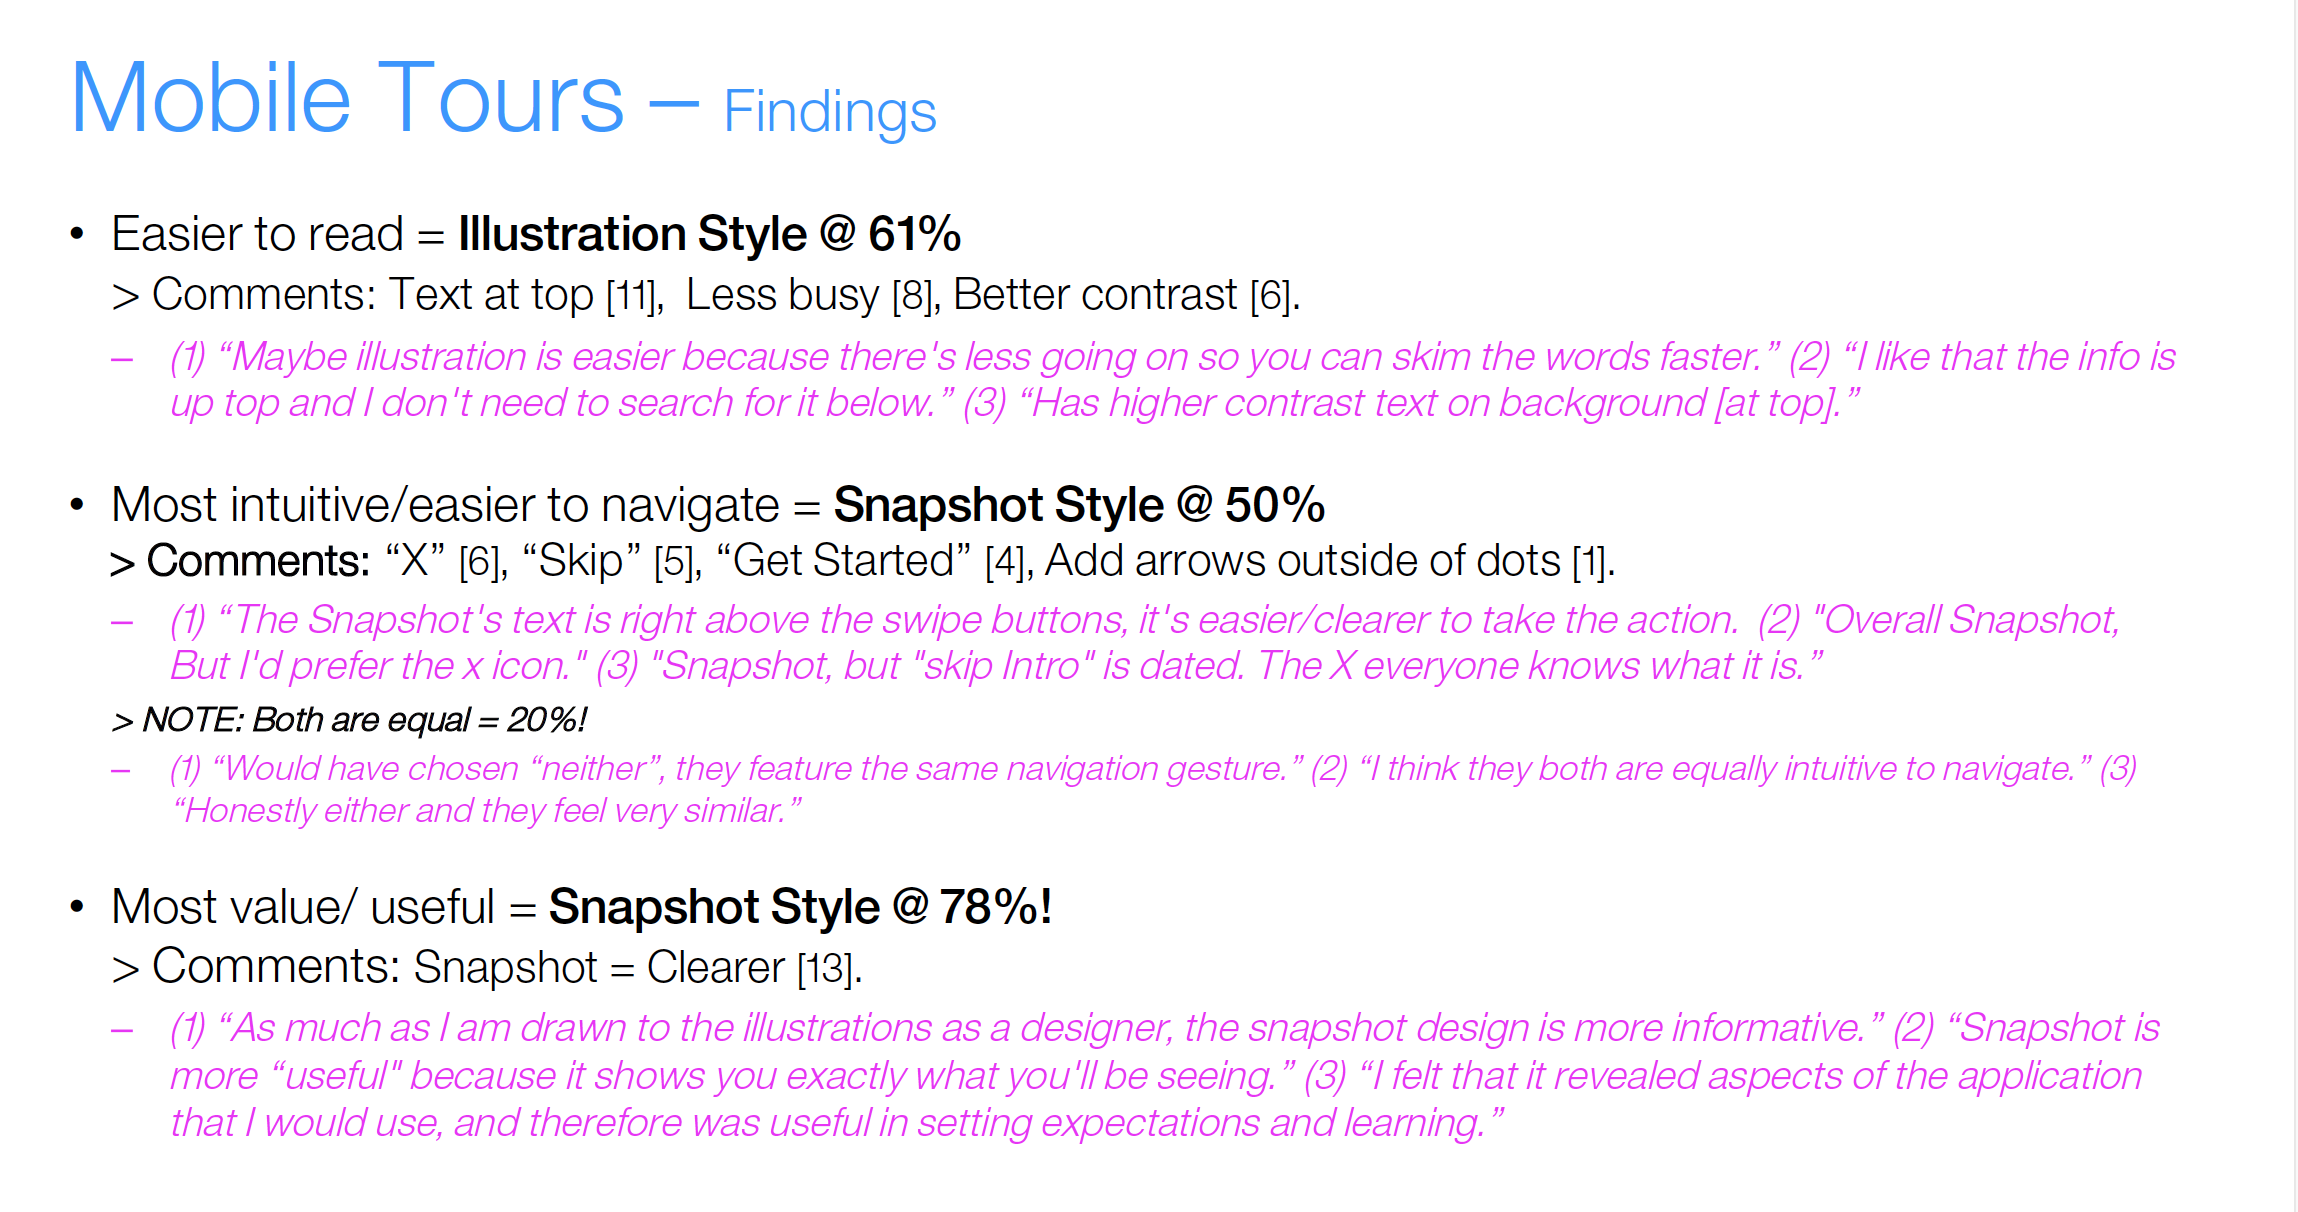 Mobile Findings 1.png